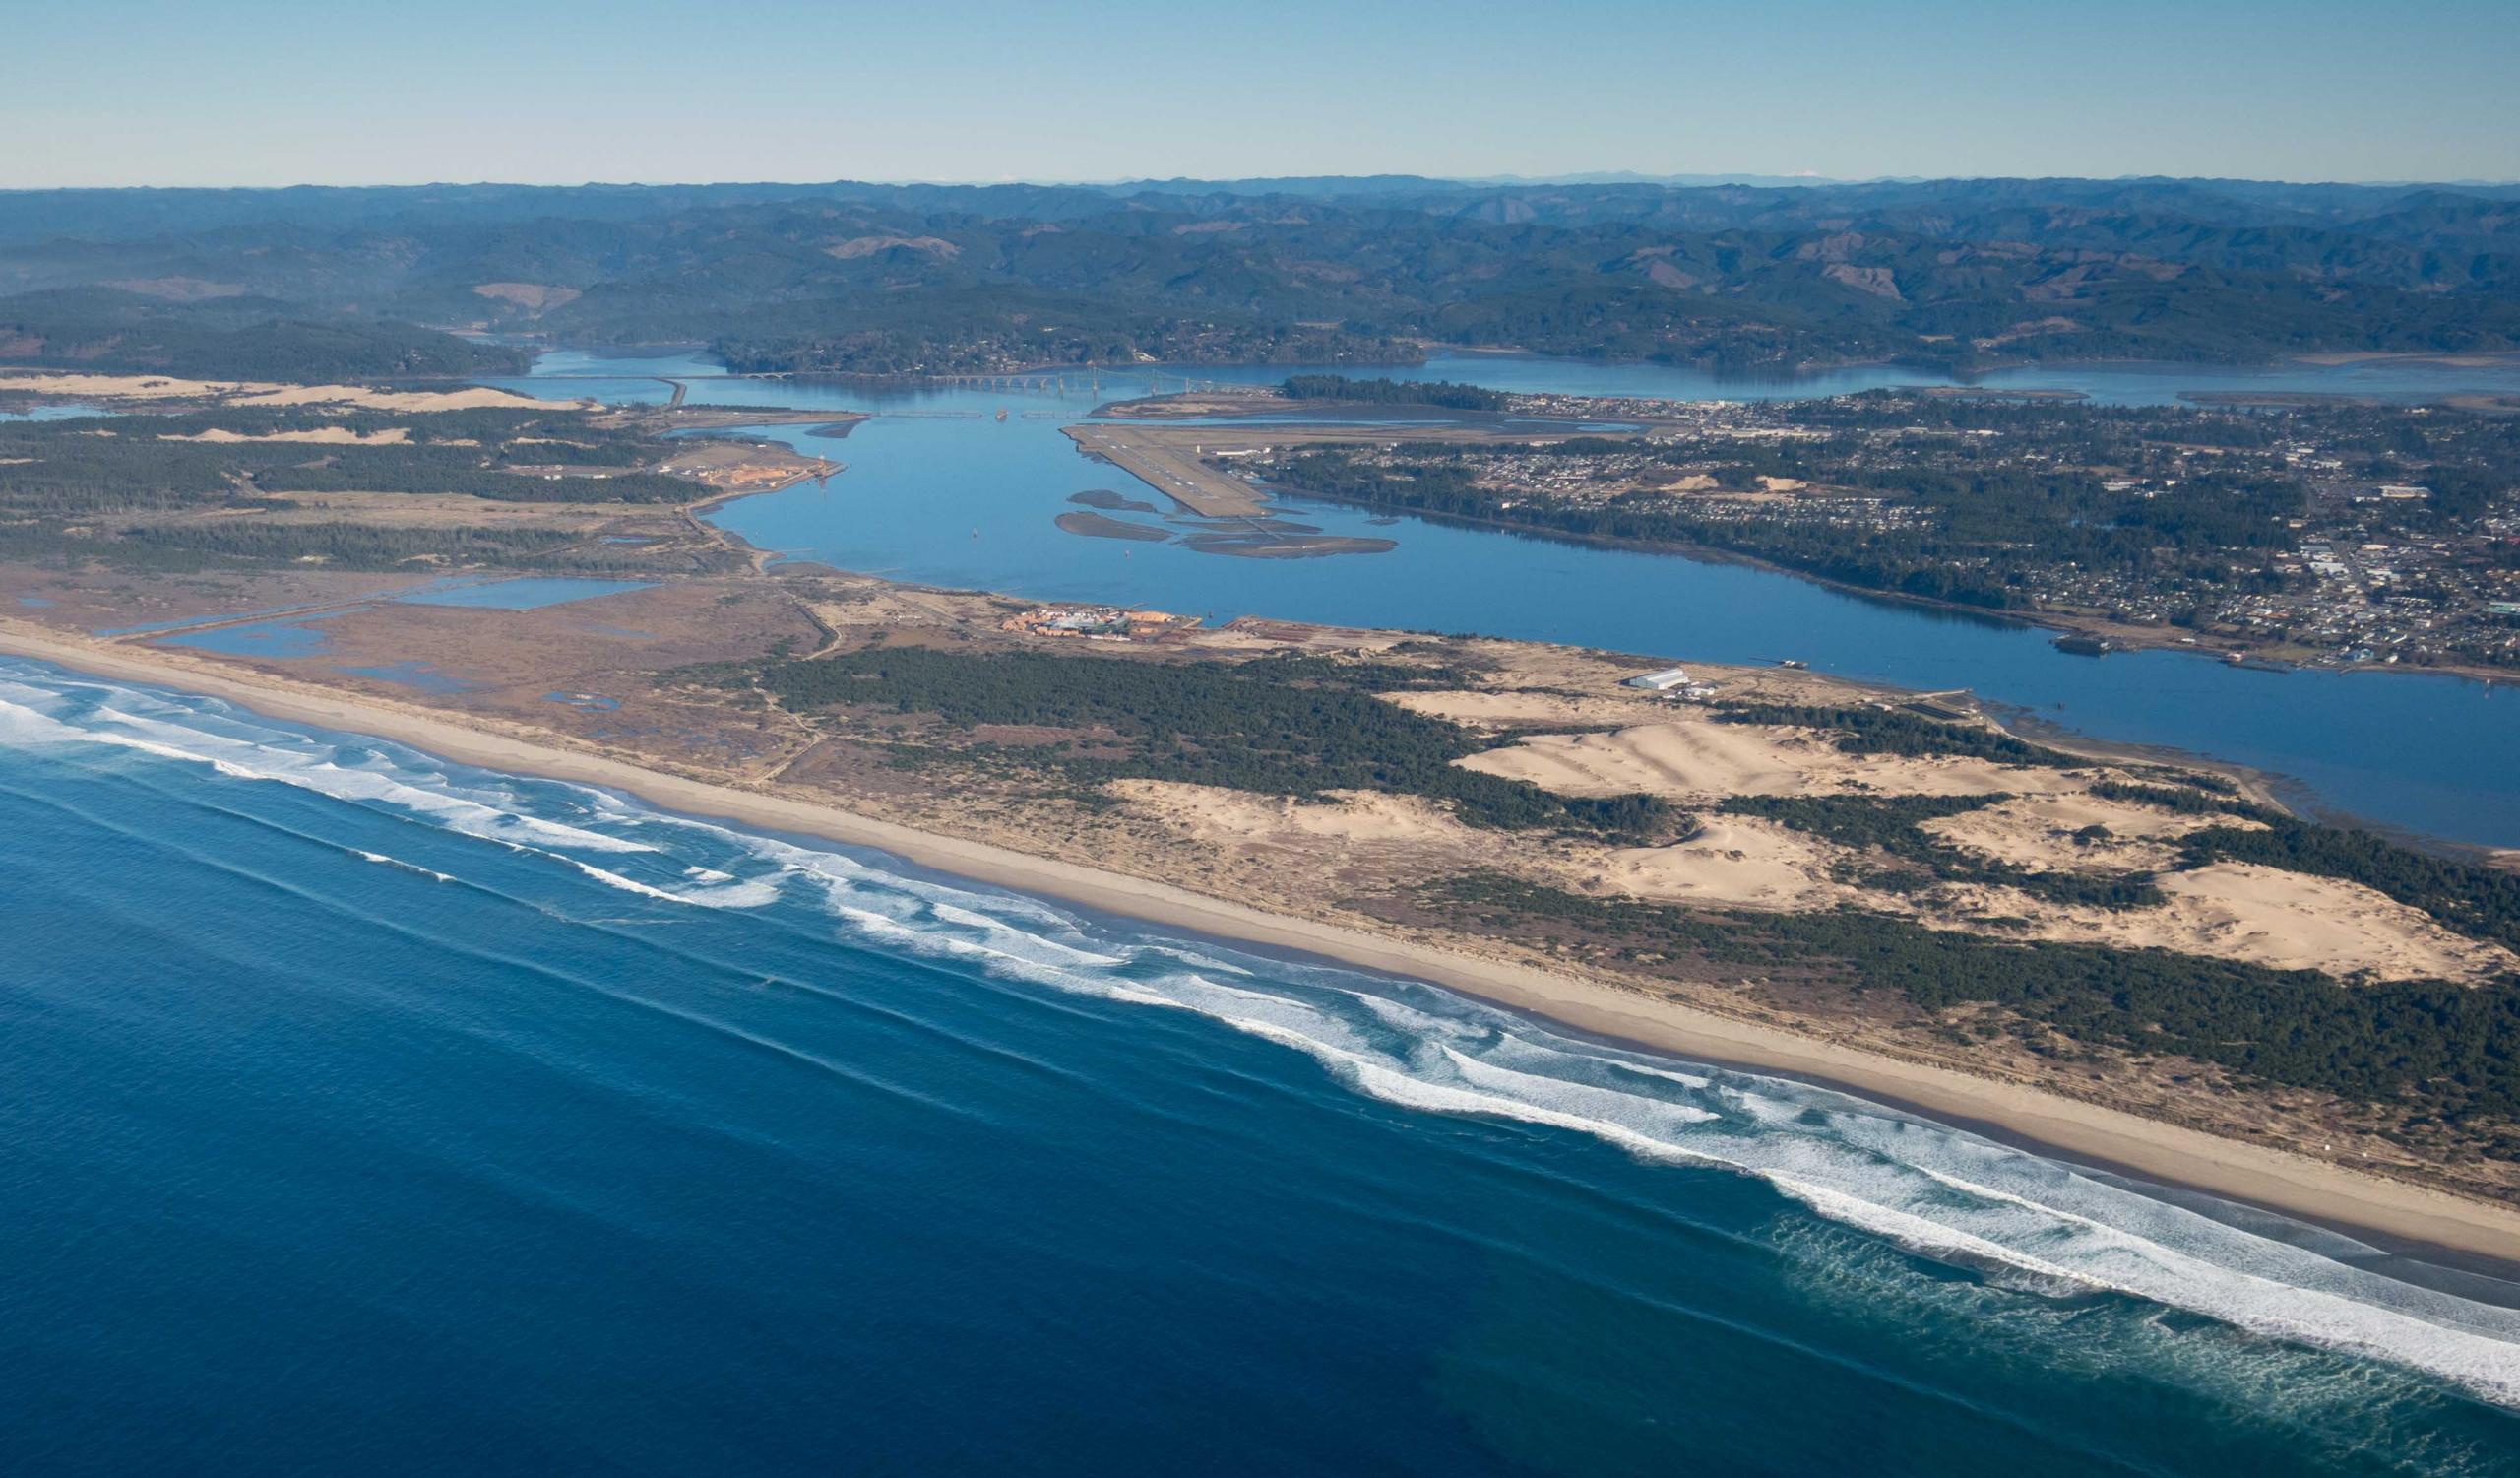 Photo of Coos Bay's North Spit -- note North Bend airport runway in the distance, pointed at where the LNG tanks would have been built, by Alex Derr.